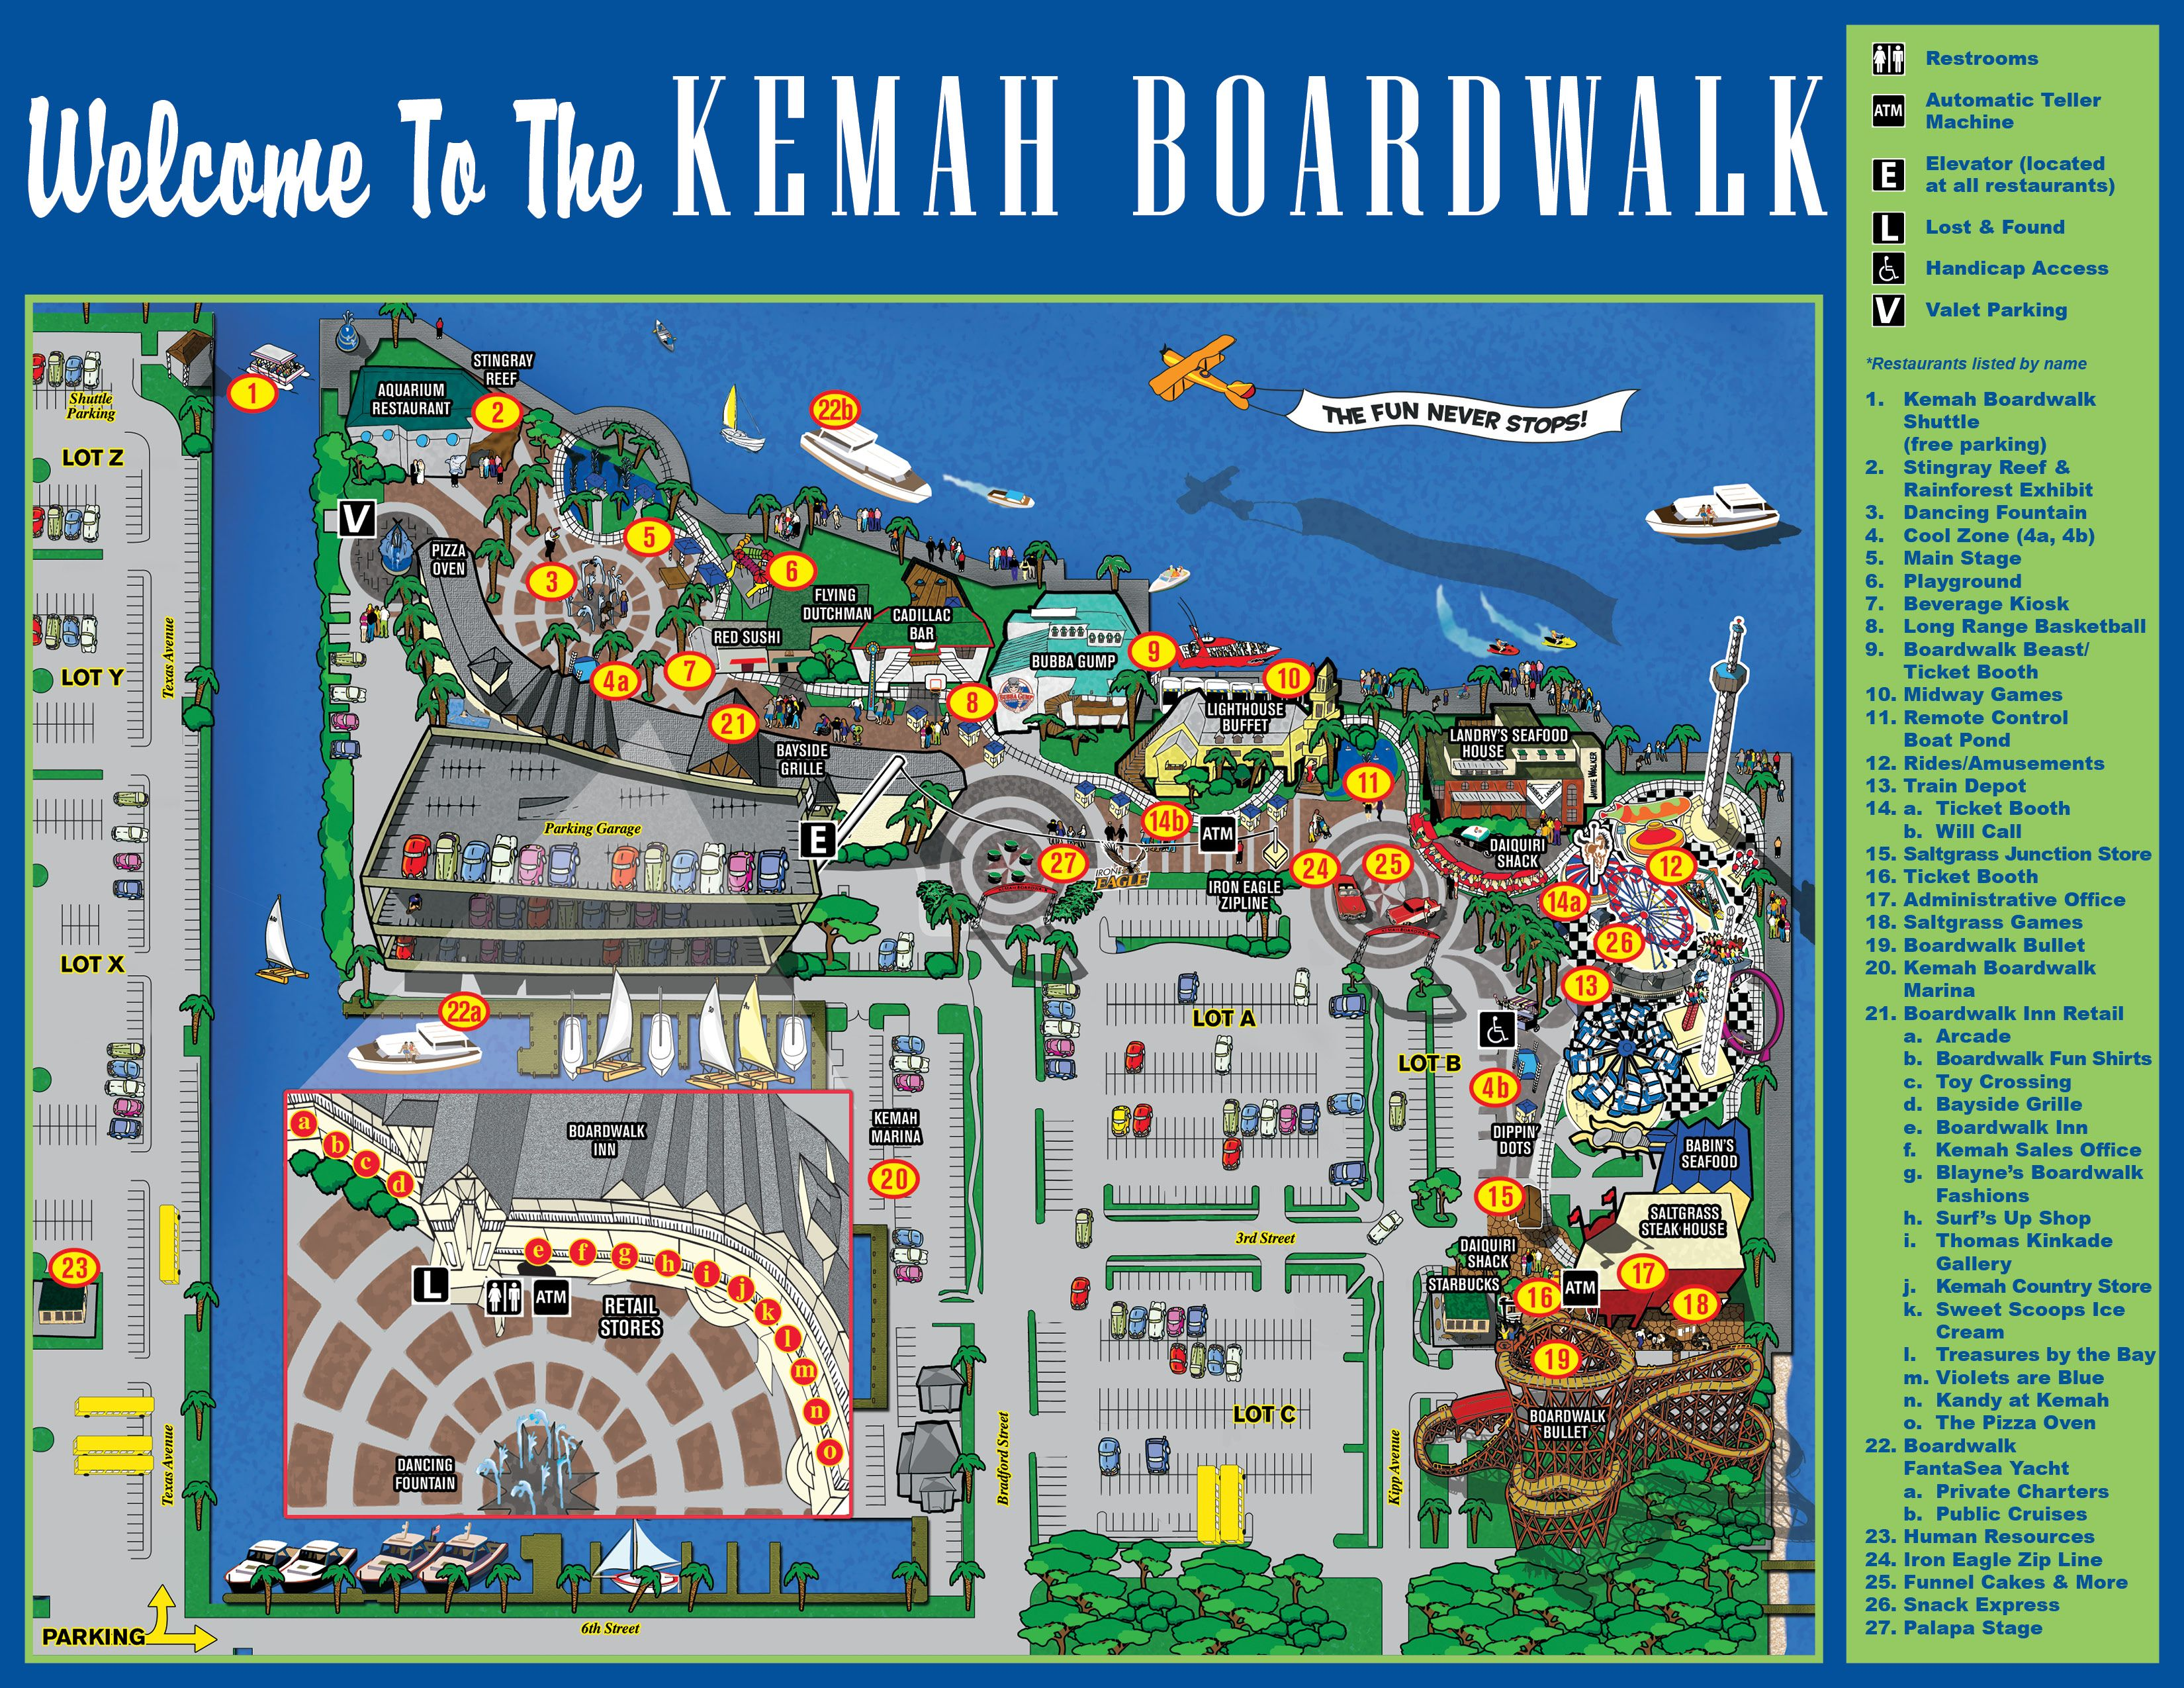 Map Of Kemah Boardwalk Restaurants 215 Kipp Ave Tx 77565 877 At 285 3624